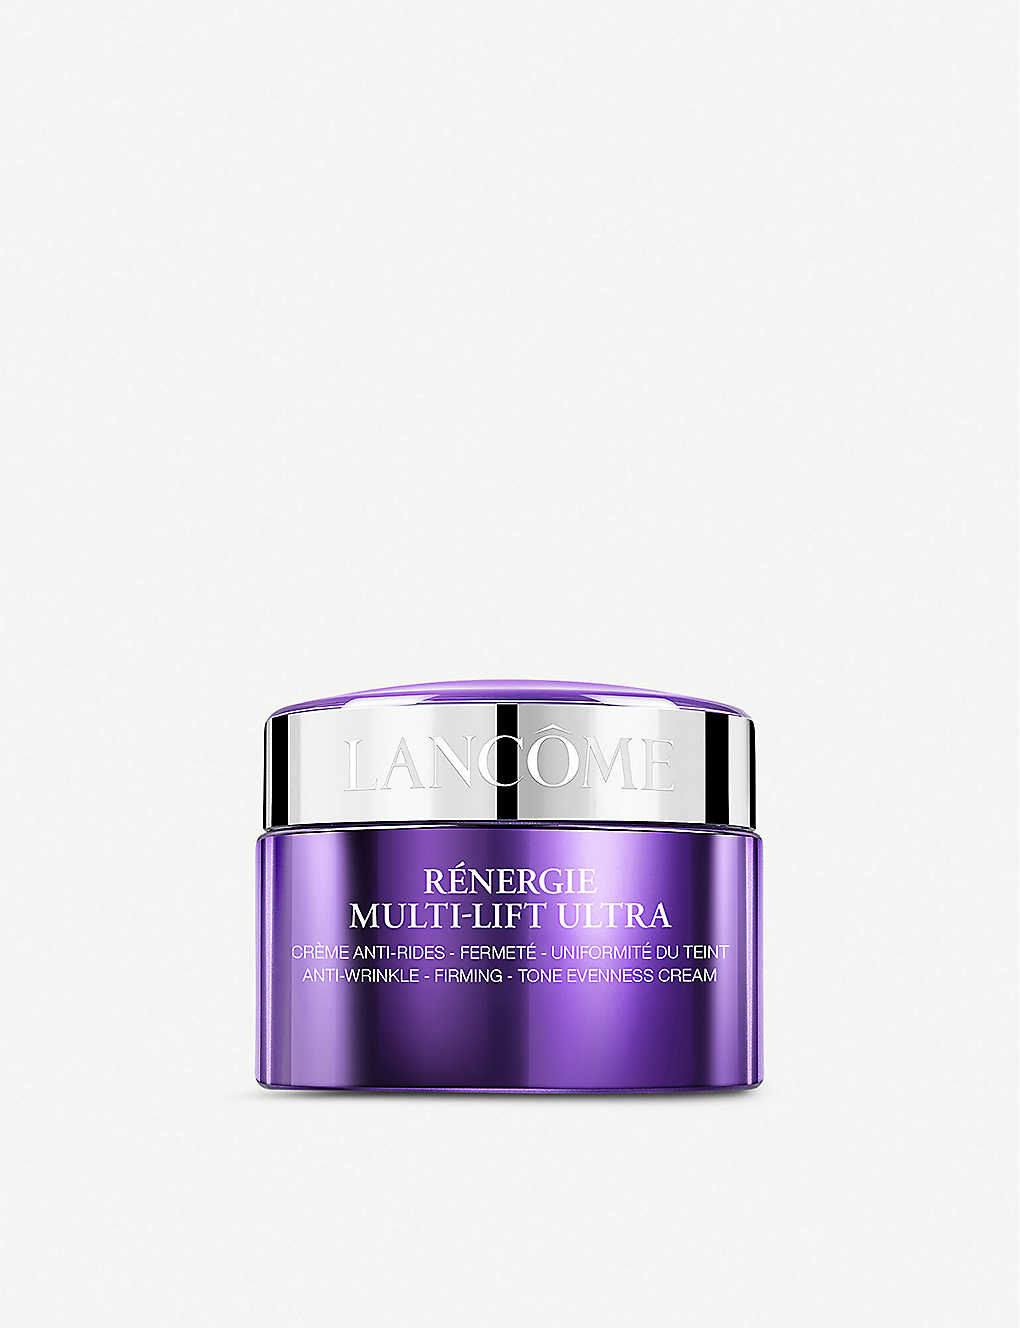 LANCOME: Rénergie Multi-Lift Ultra Full Spectrum Cream 50ml